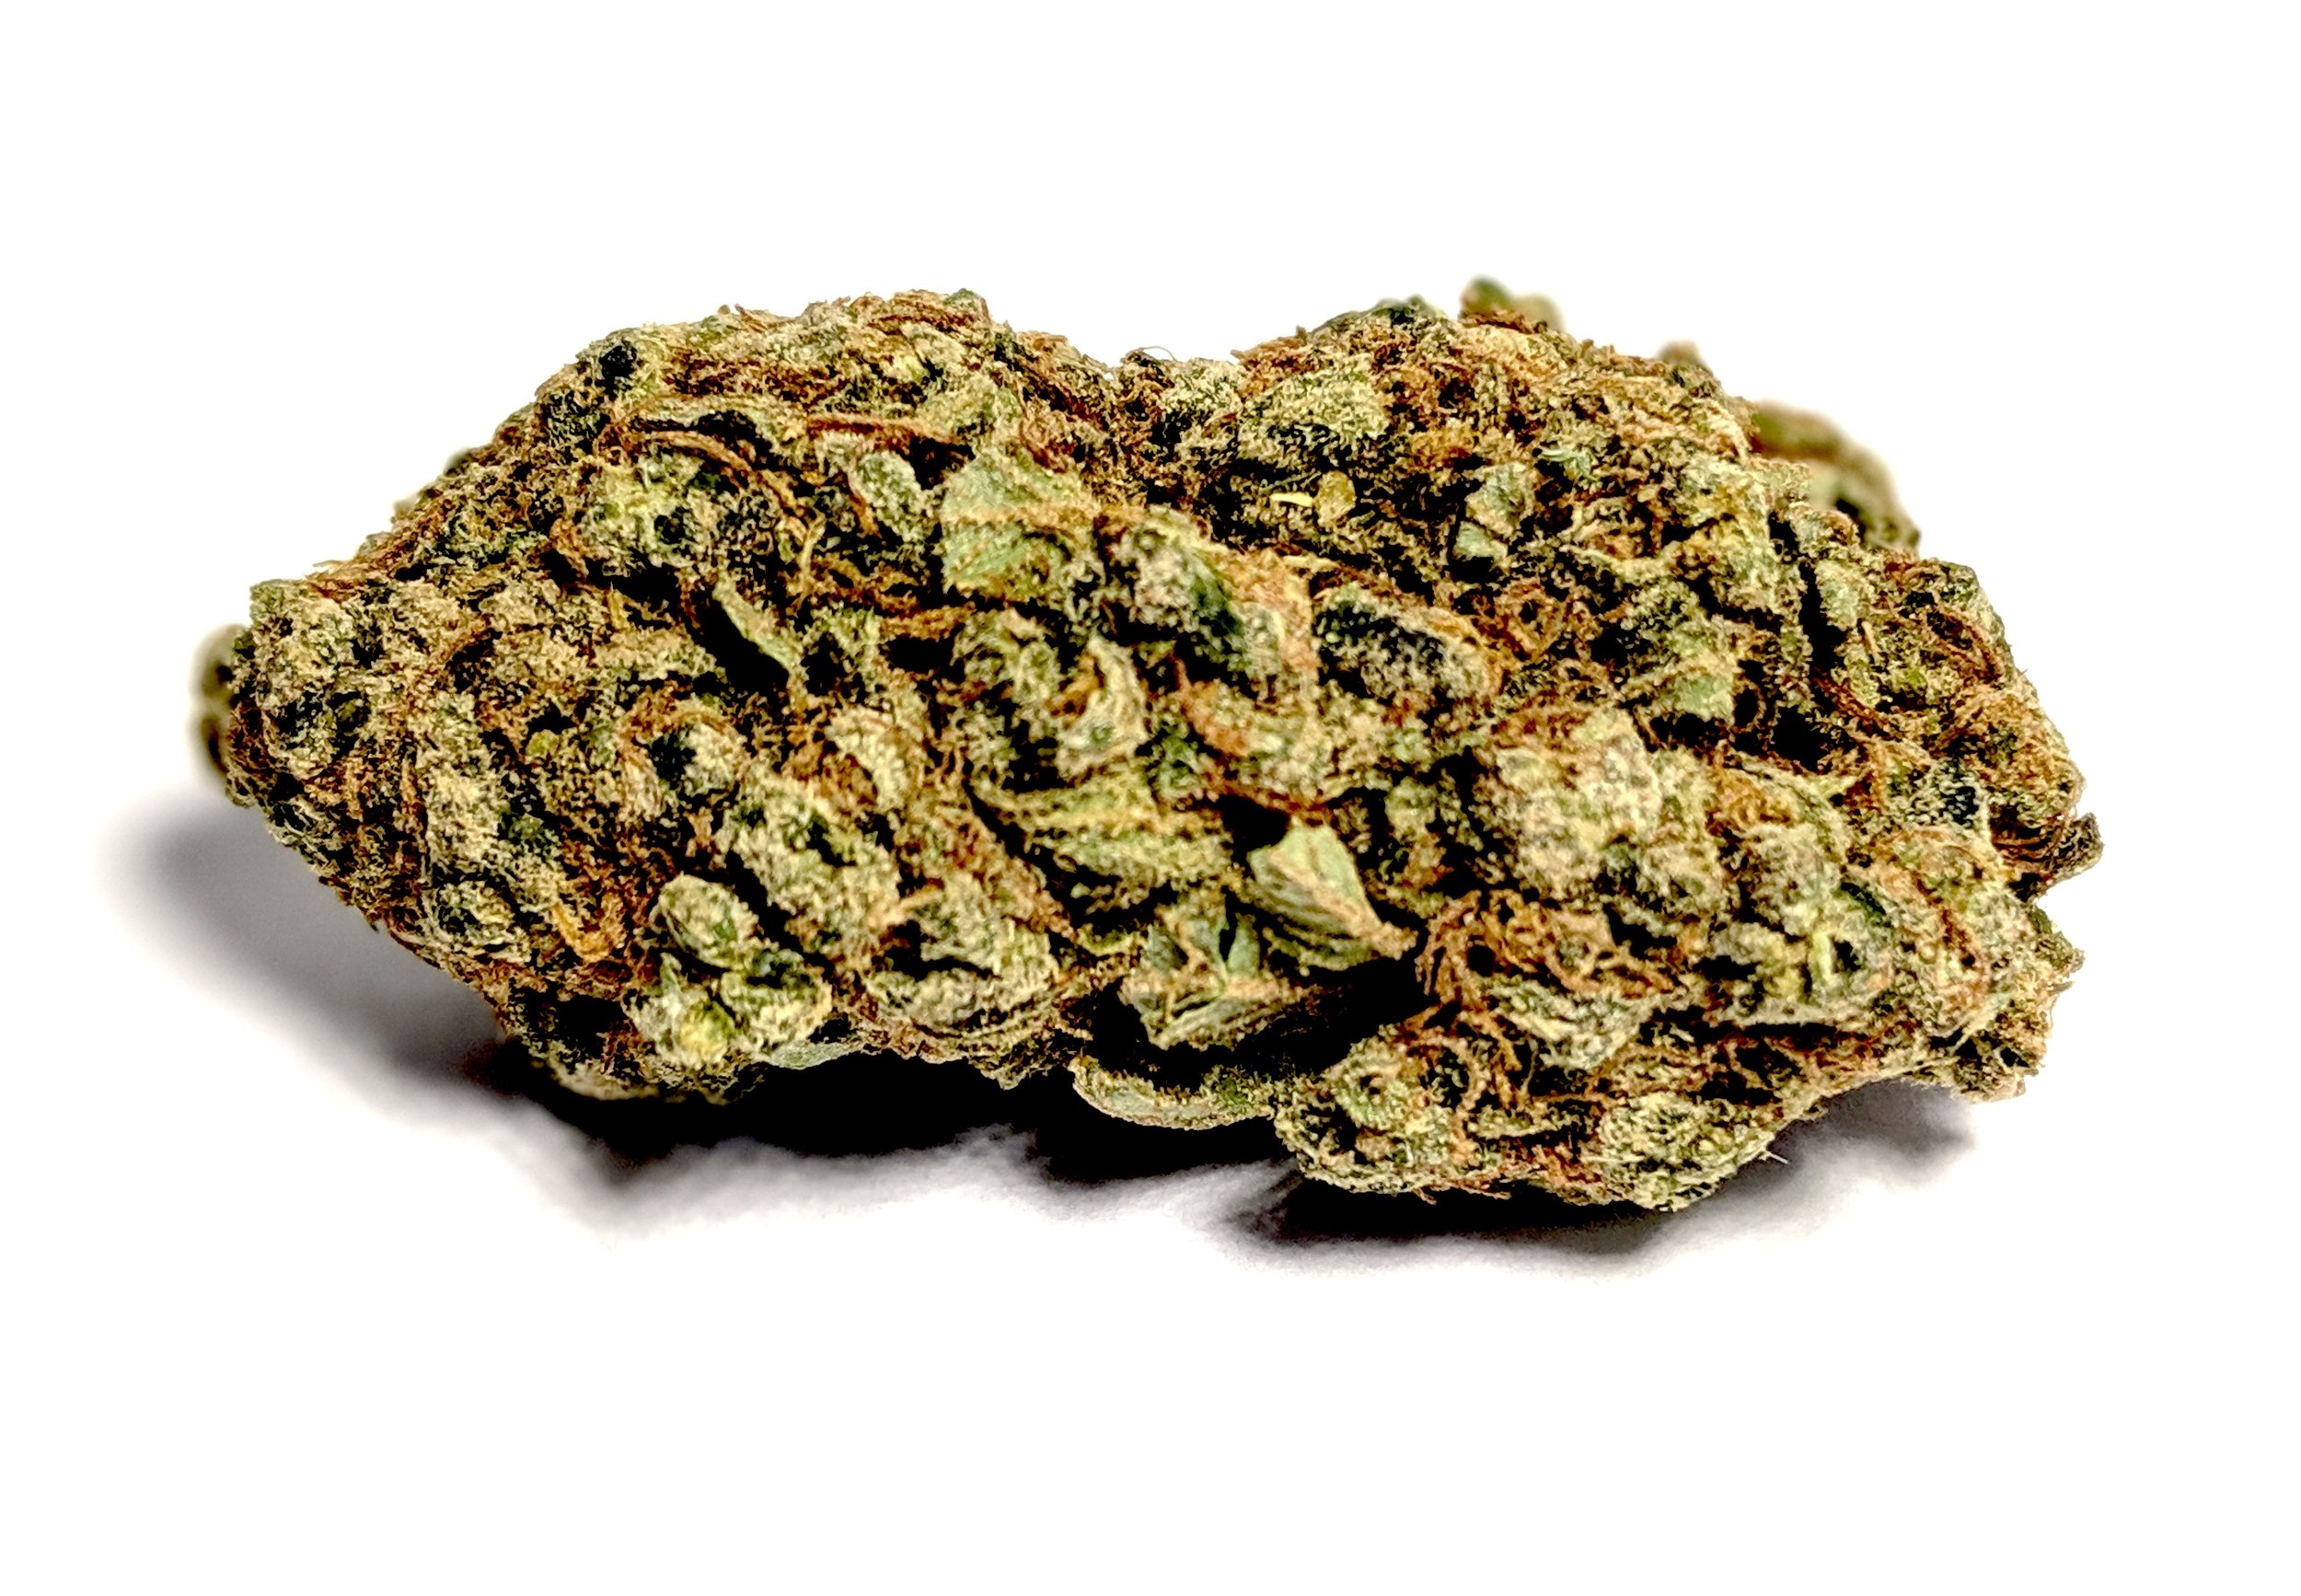 G13 - Indica    1/4- $55 1/2-$95 OZ-$160   G13 is a very strong strain of cannabis indica that is the subject of many urban legends. According to some accounts, the CIA, FBI, and other agencies gathered the best strains of marijuana from breeders all over the world. At a super-secret installation at the University of Mississippi, they bred many new super hybrids in the late 1960s. Allegedly, a single cutting of this plant was liberated by an unnamed technician and bred for the masses. Although the legends are probably not true, G13 delivers effects like no other. If you have the opportunity, definitely partake in this strain.